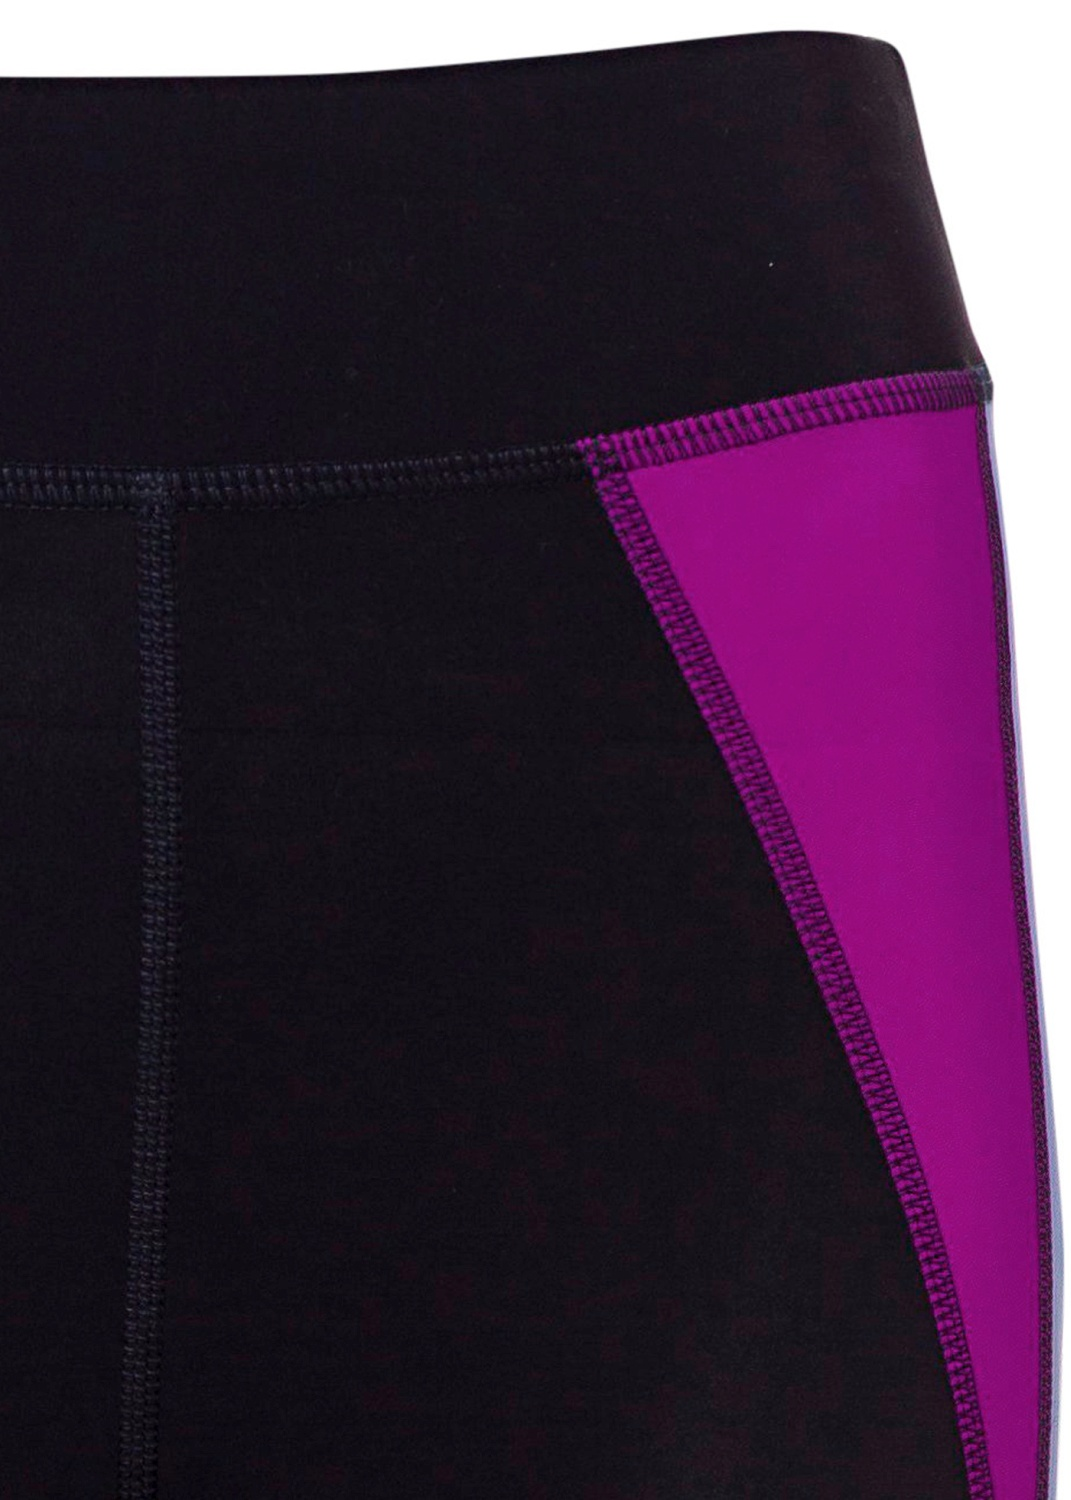 TISO Trouser image number 2